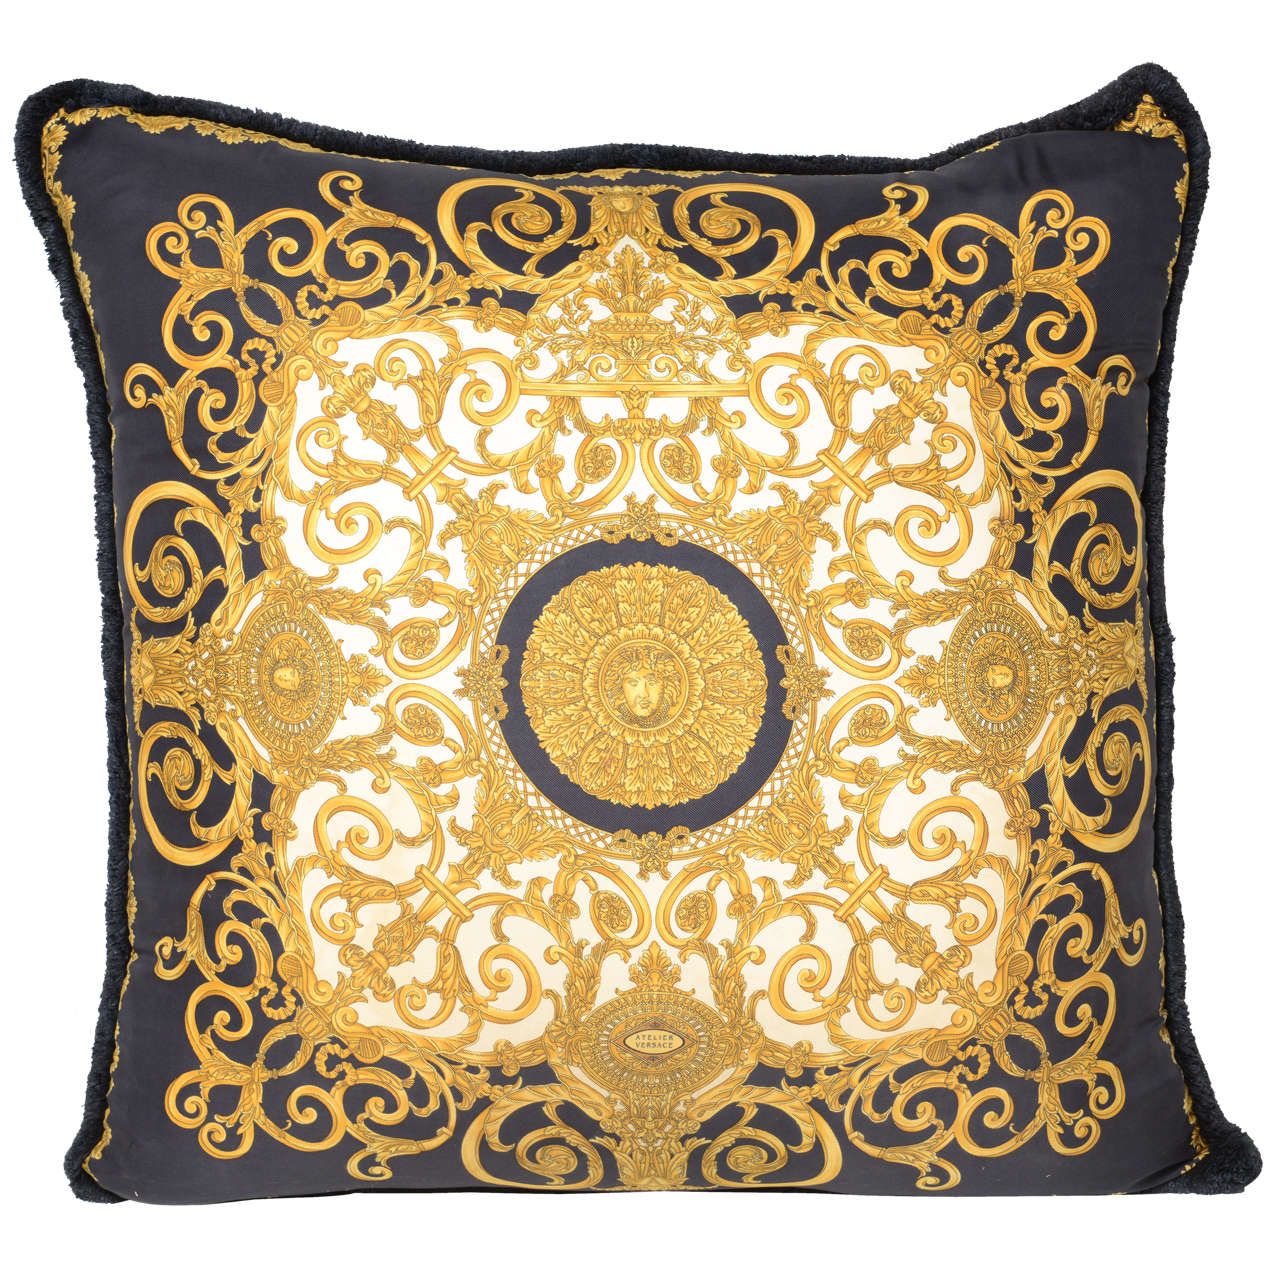 Oversized Atelier Versace Pillow (double sided) at 1stdibs